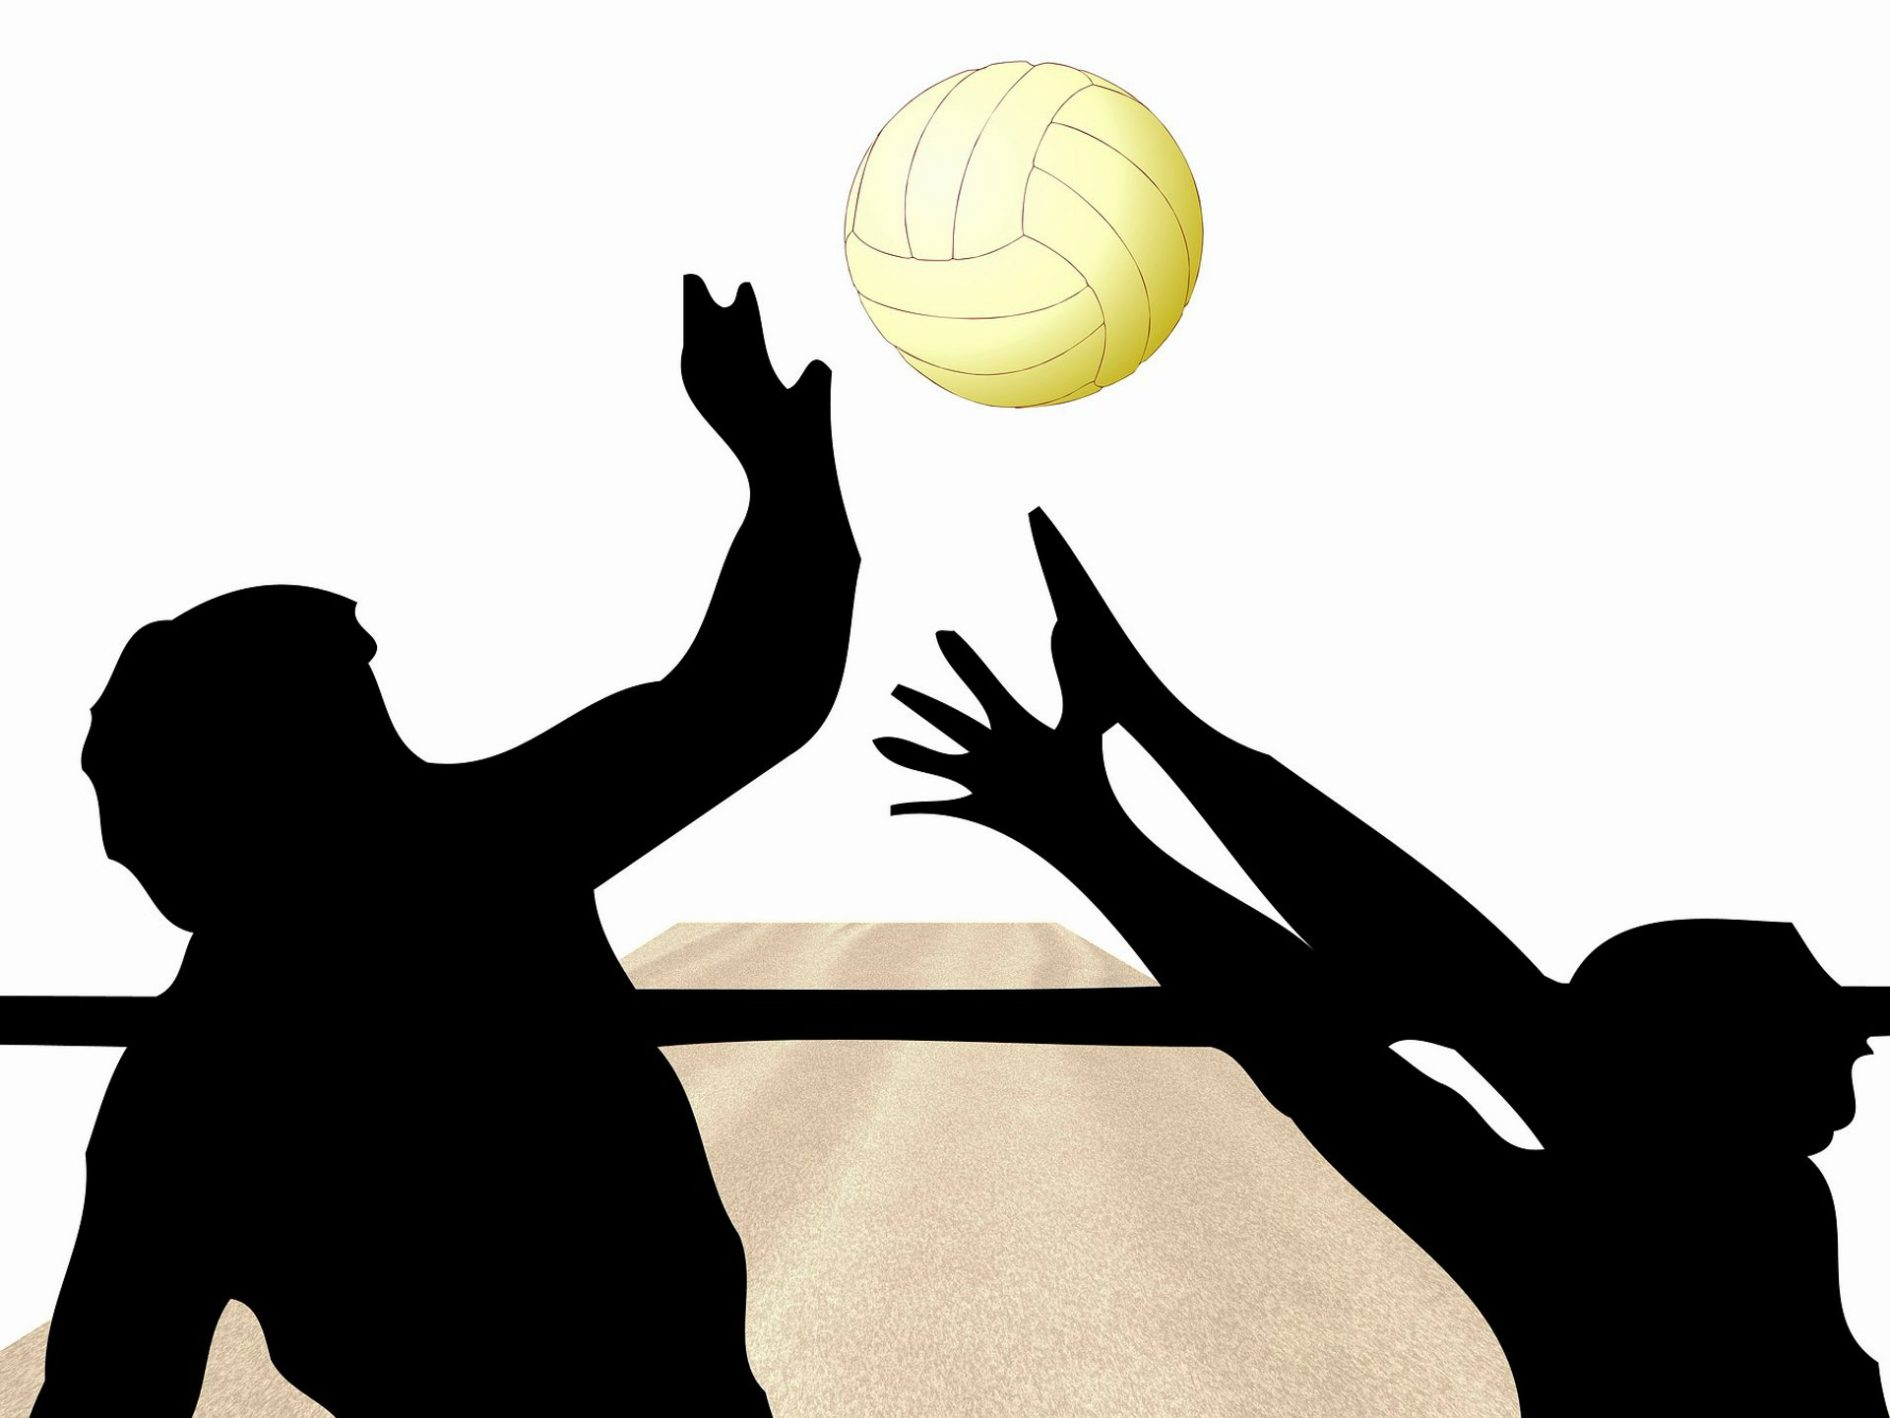 16 nov – volleybaltoernooi